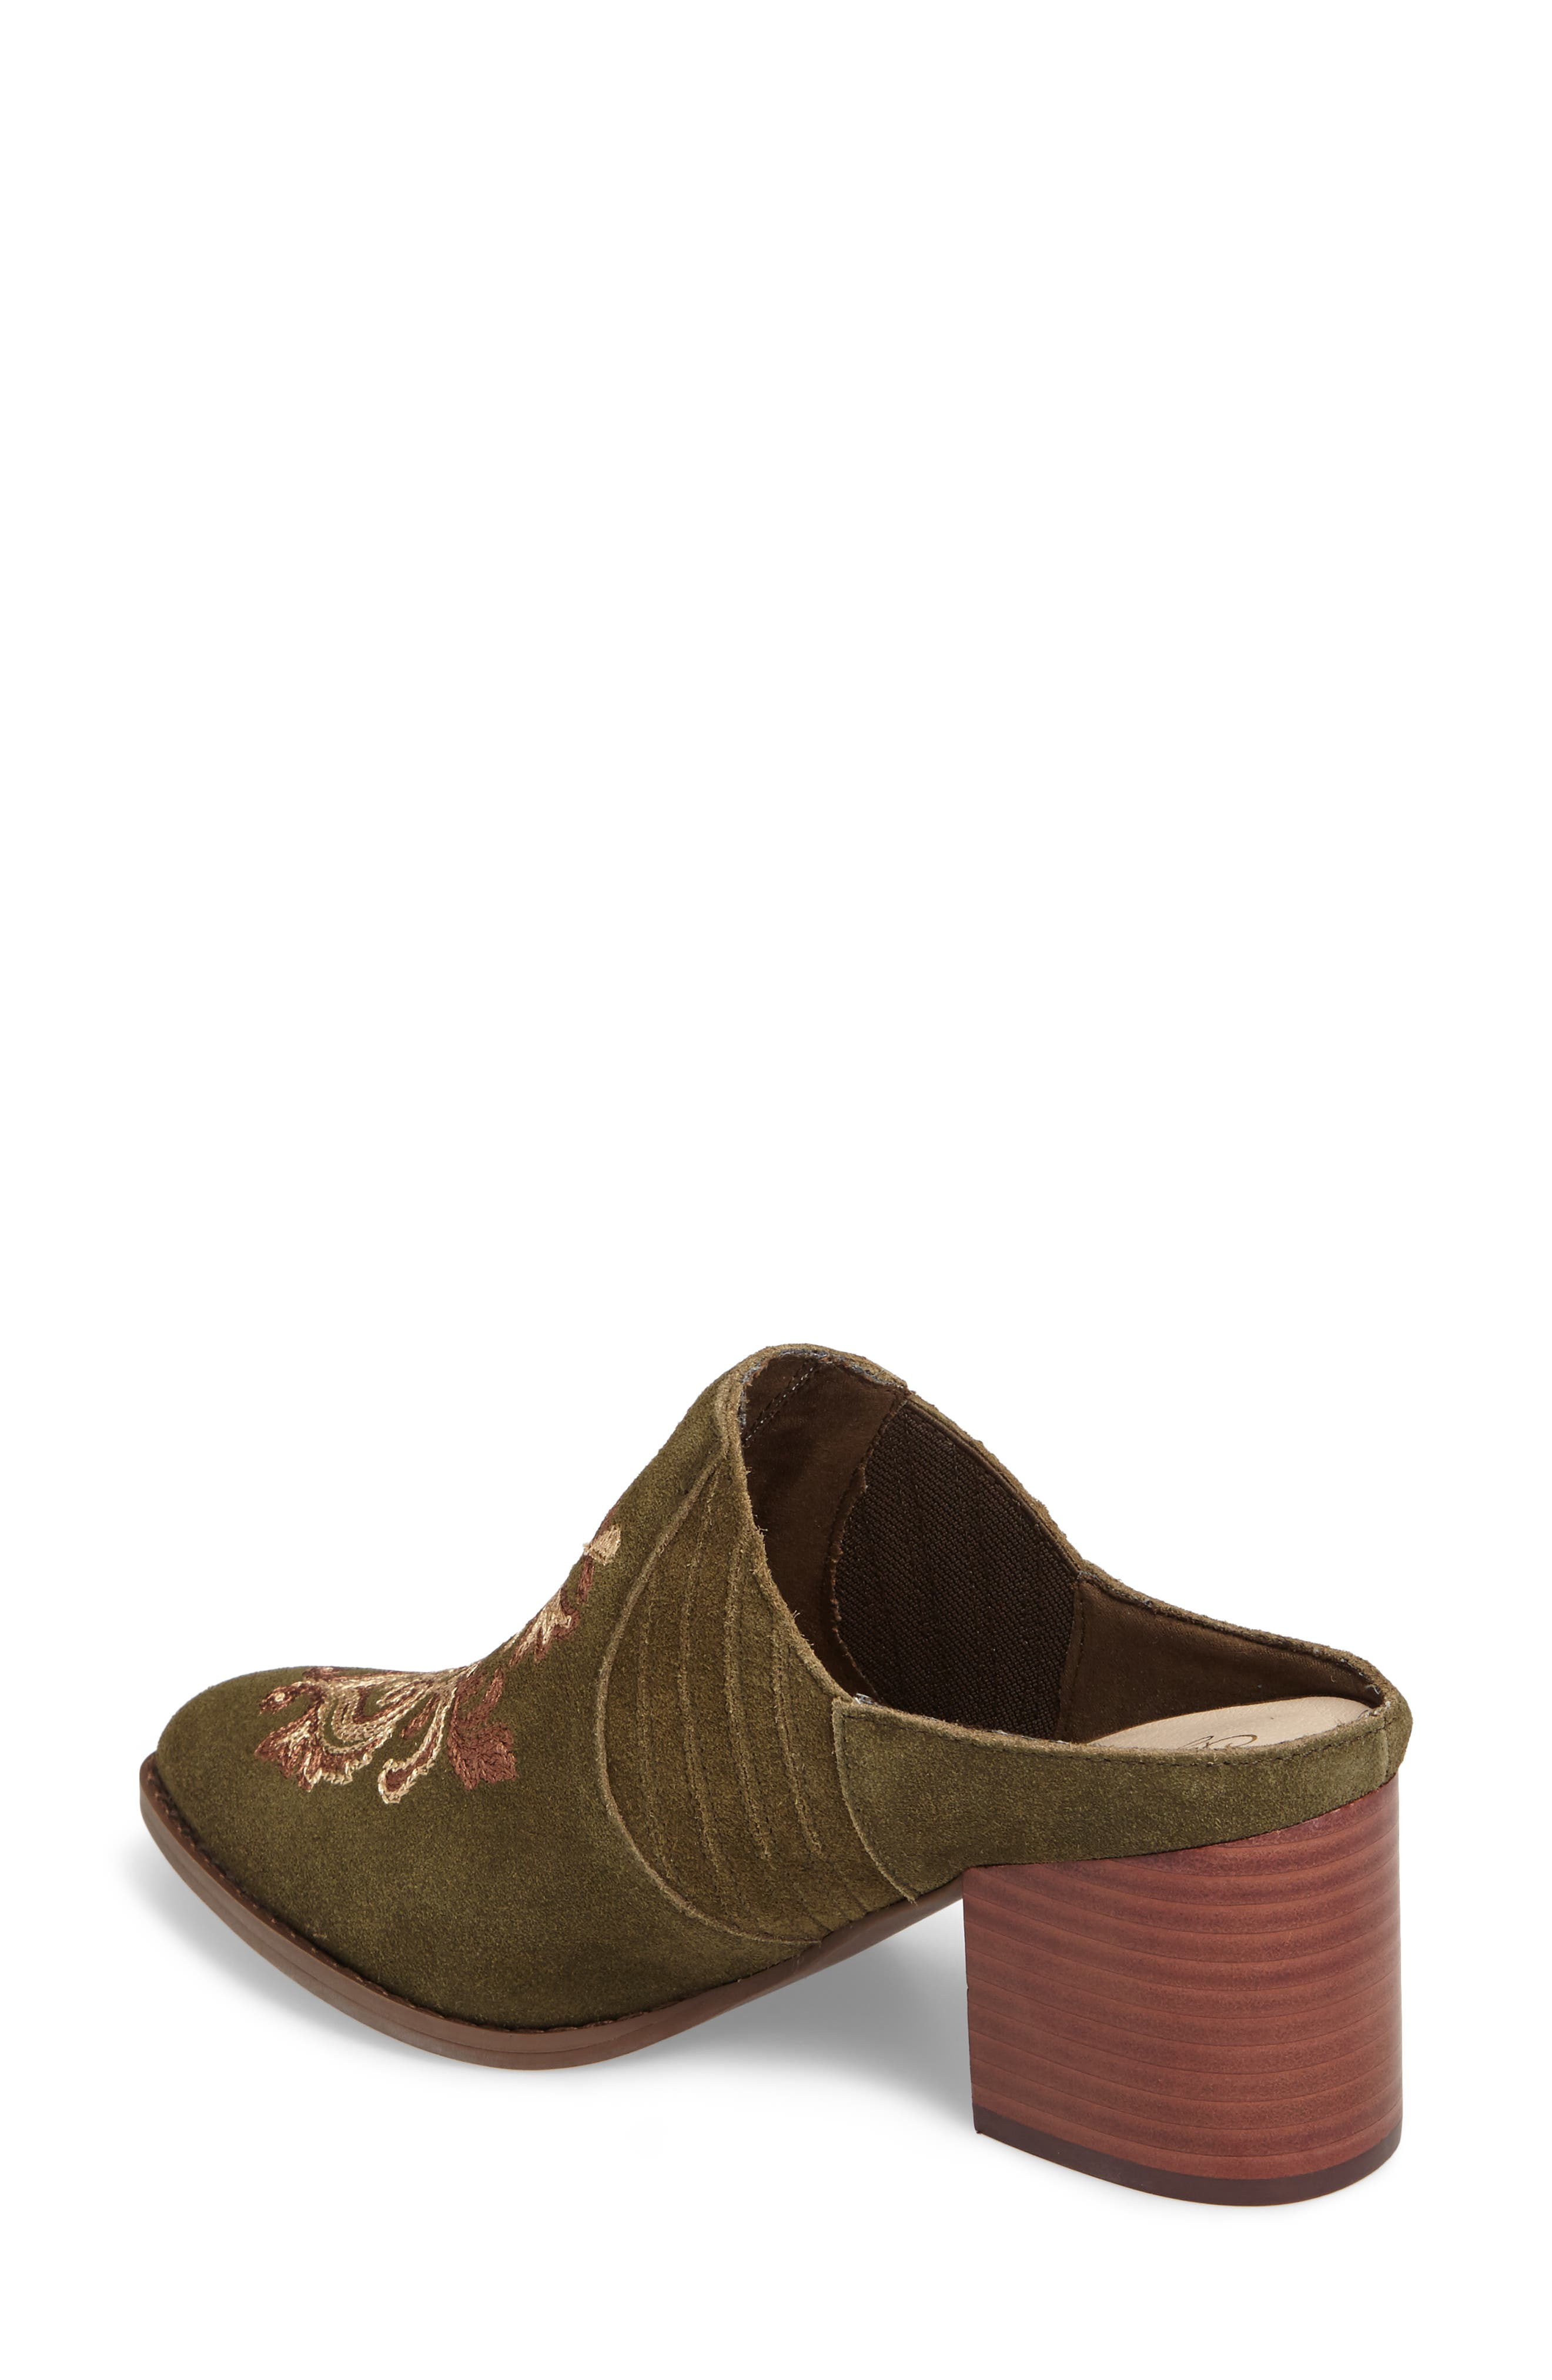 Dialogue Pointy Toe Mule,                             Alternate thumbnail 6, color,